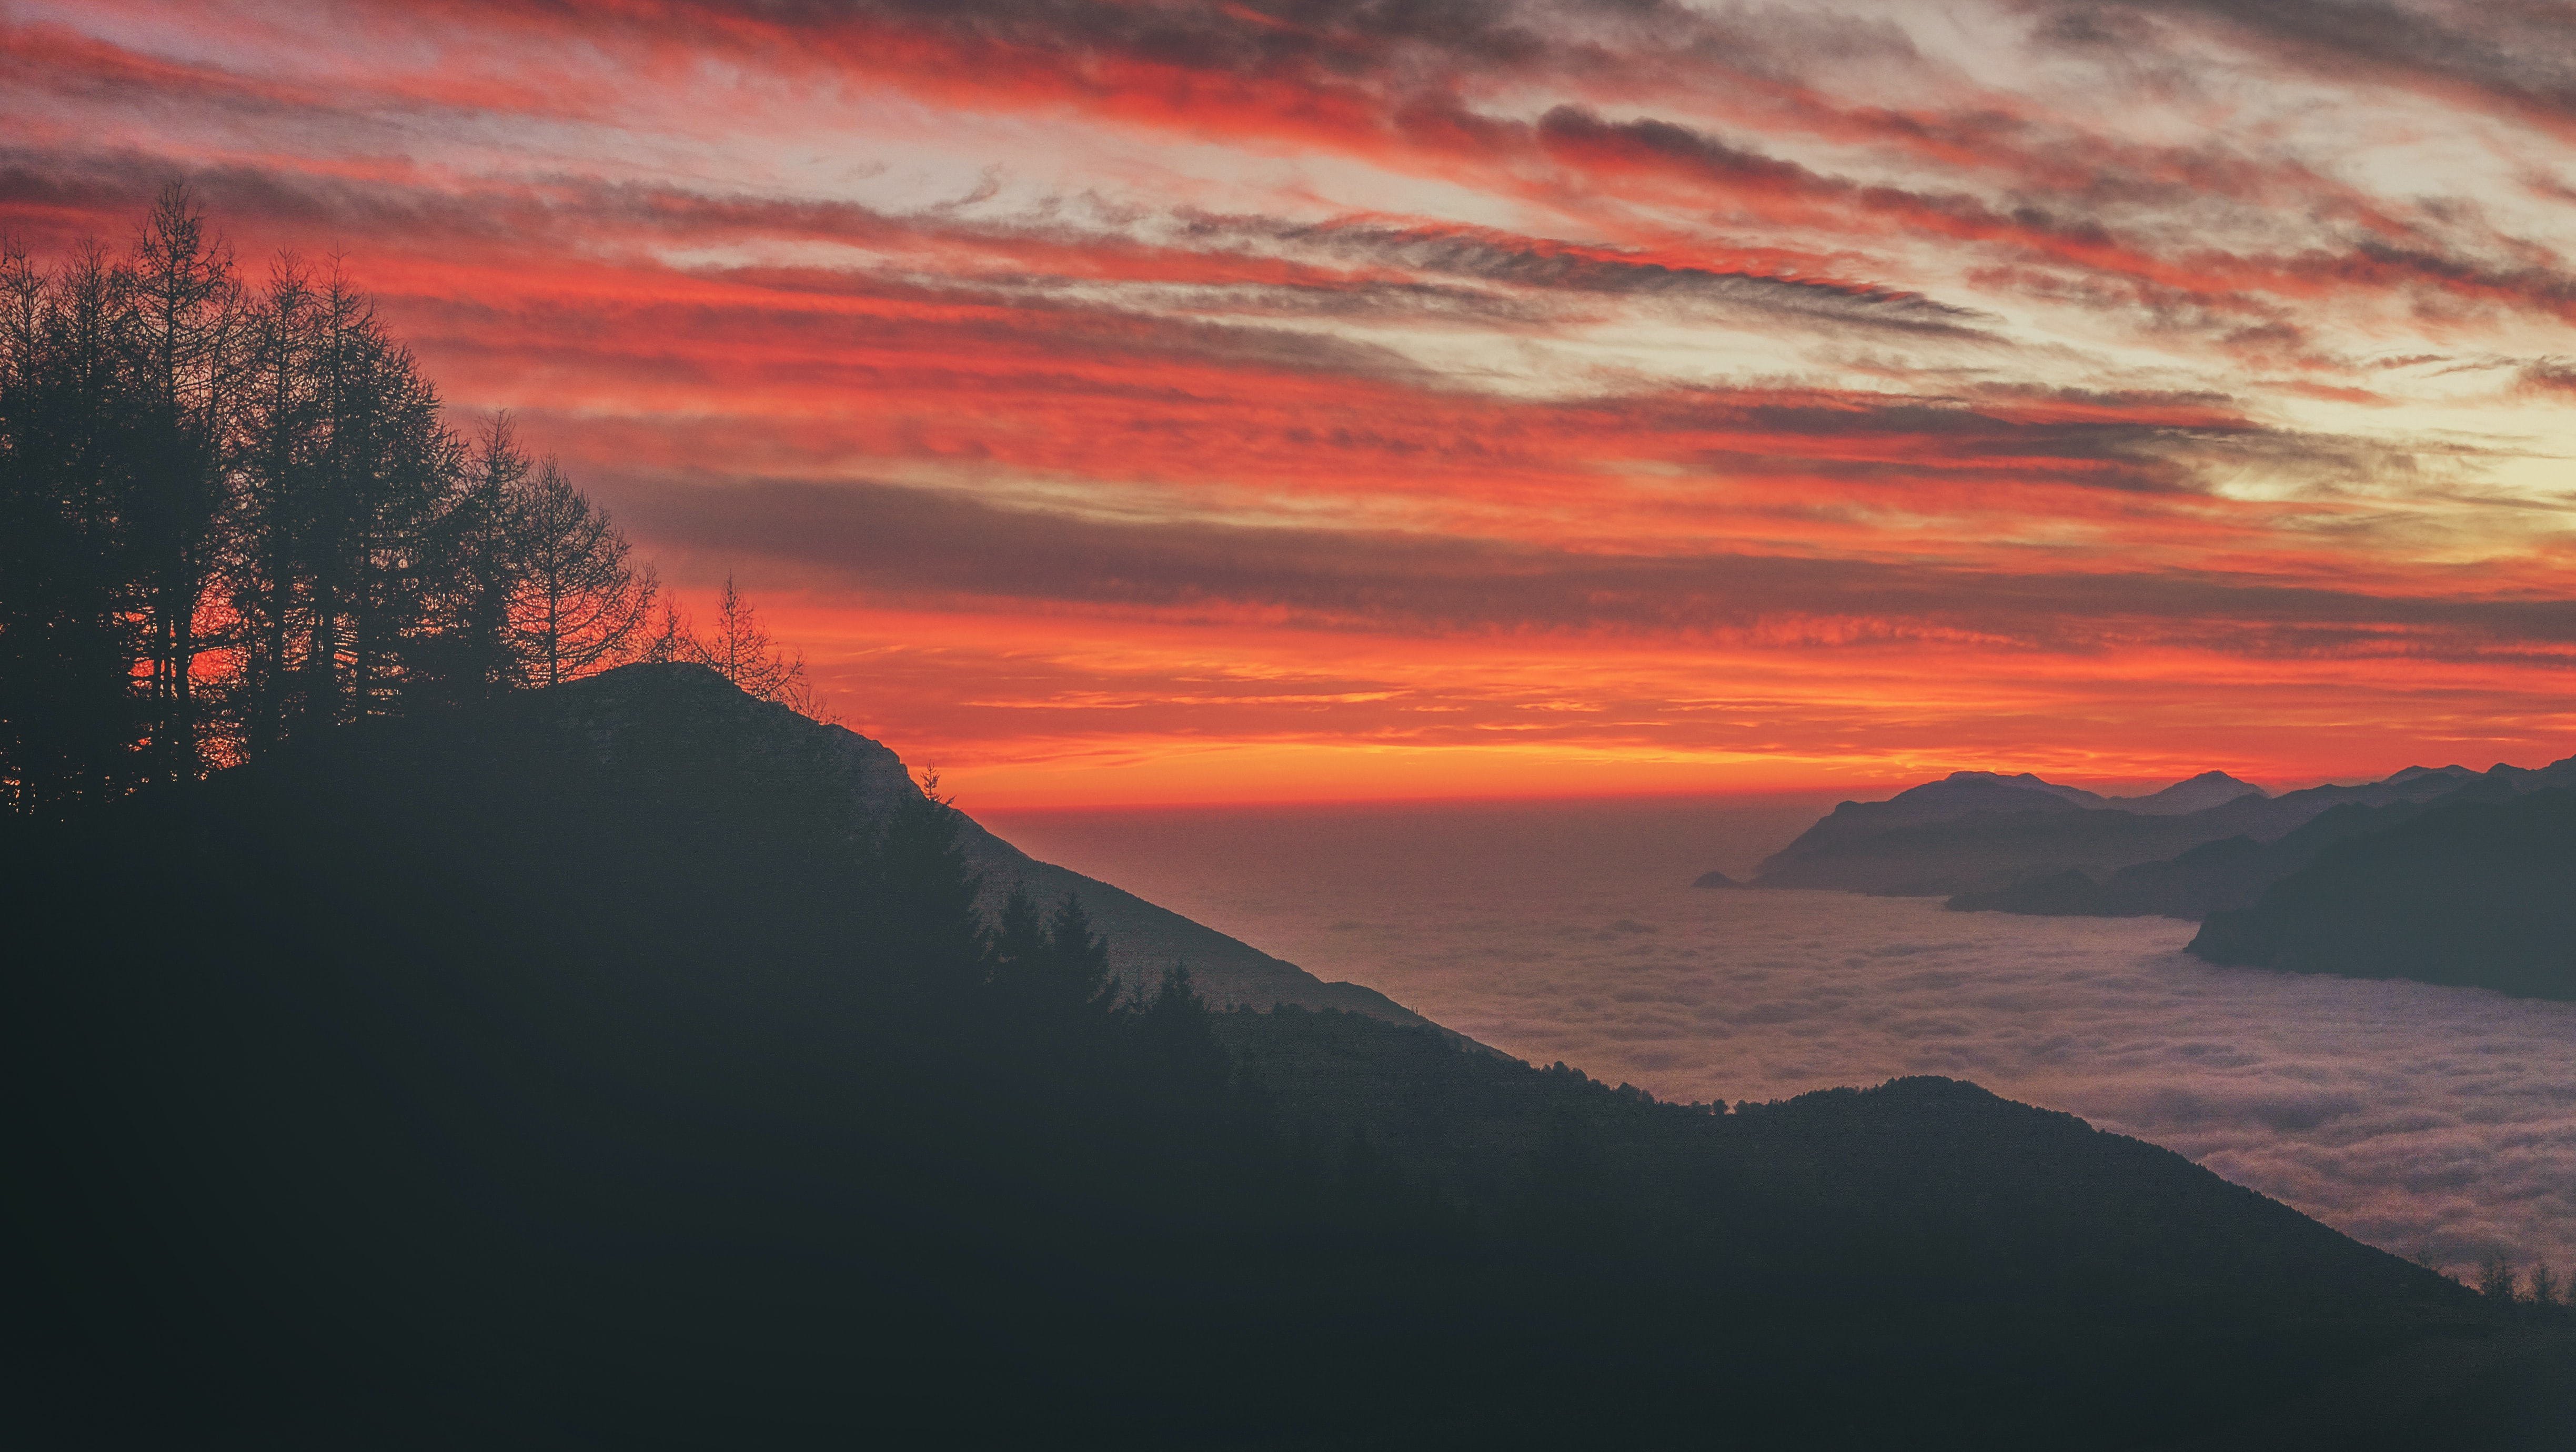 Silhouette of trees on a mountain against a red-streaked cloudy sky, fog and mountains in the distance